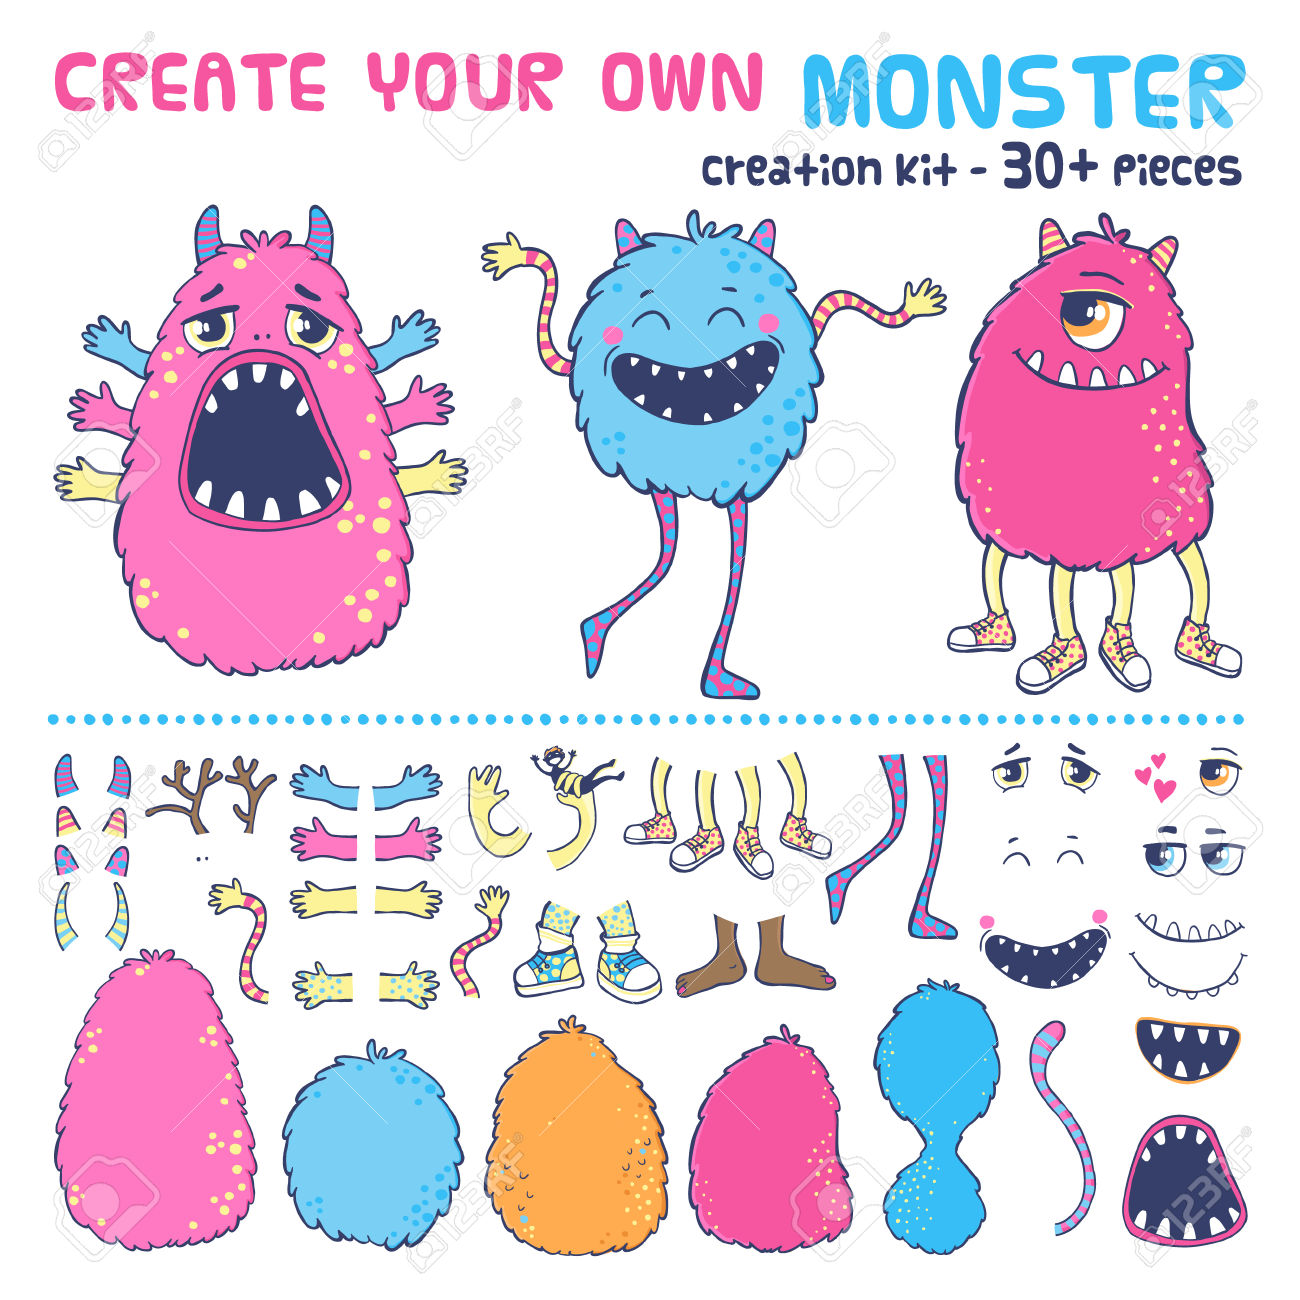 Monster Creation Kit. Create Your Own Monster. Royalty Free.